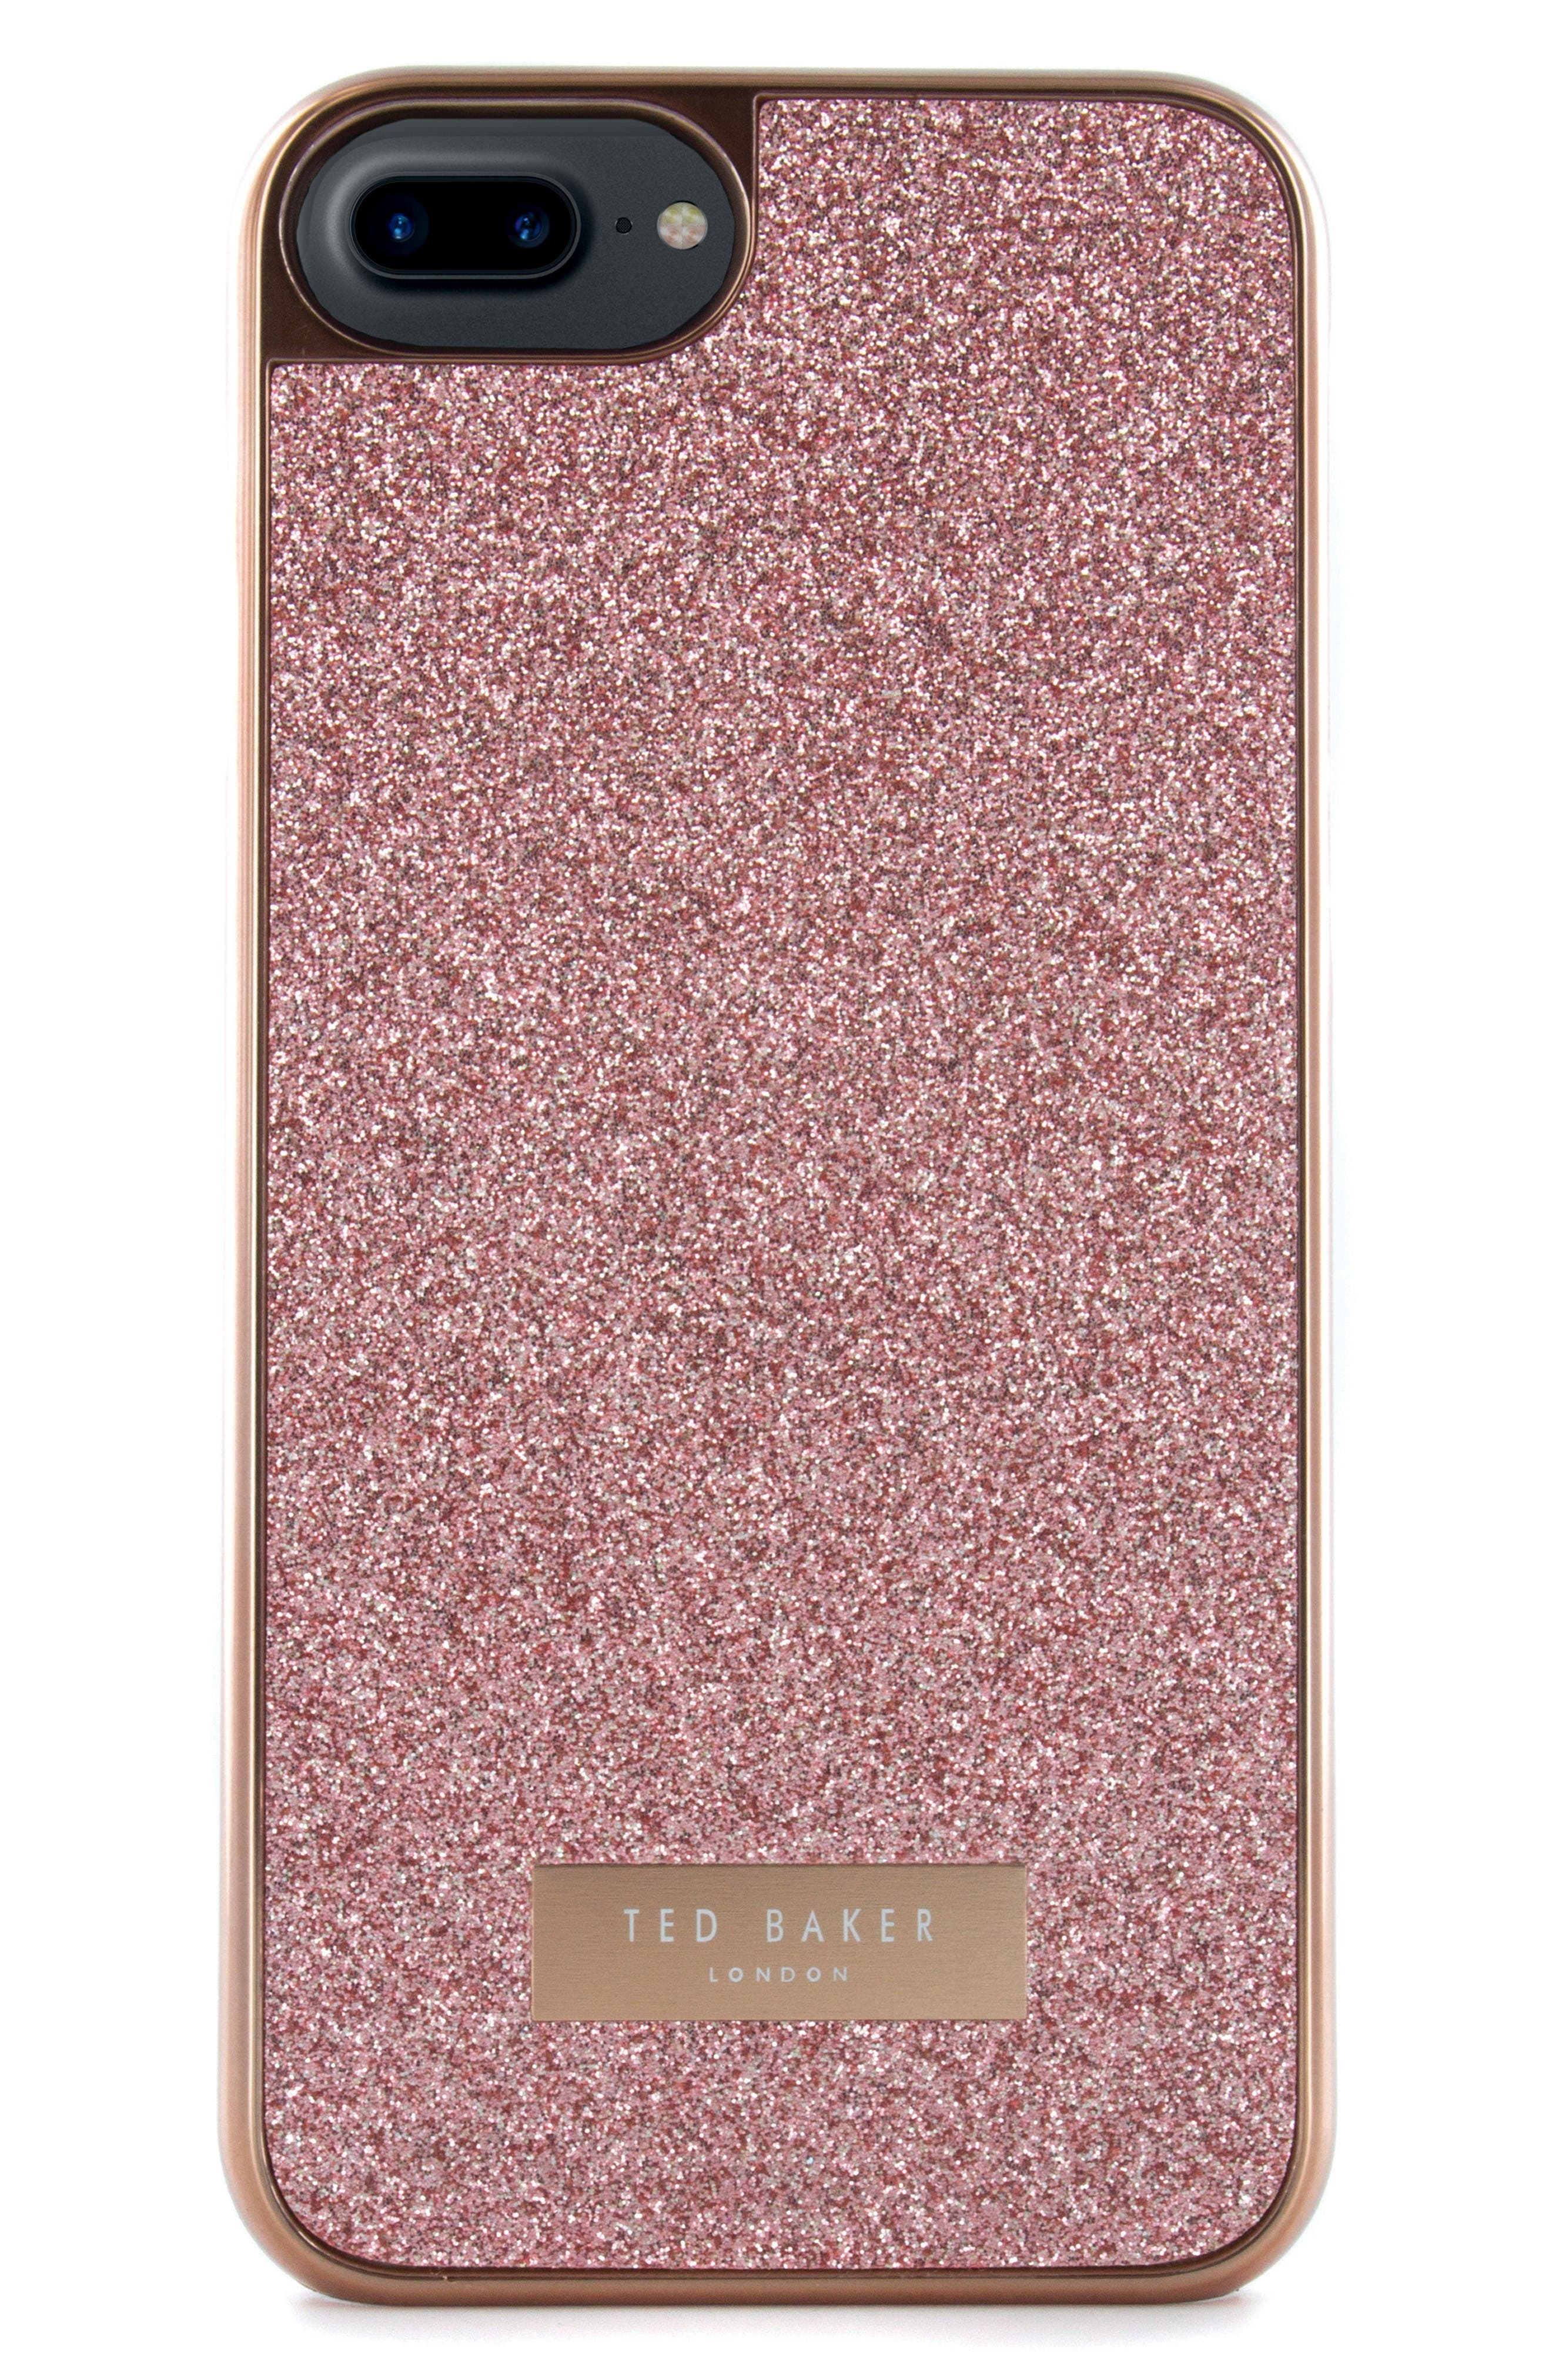 Main Image - Ted Baker London Rico iPhone 6/6s/7/8 Plus Case